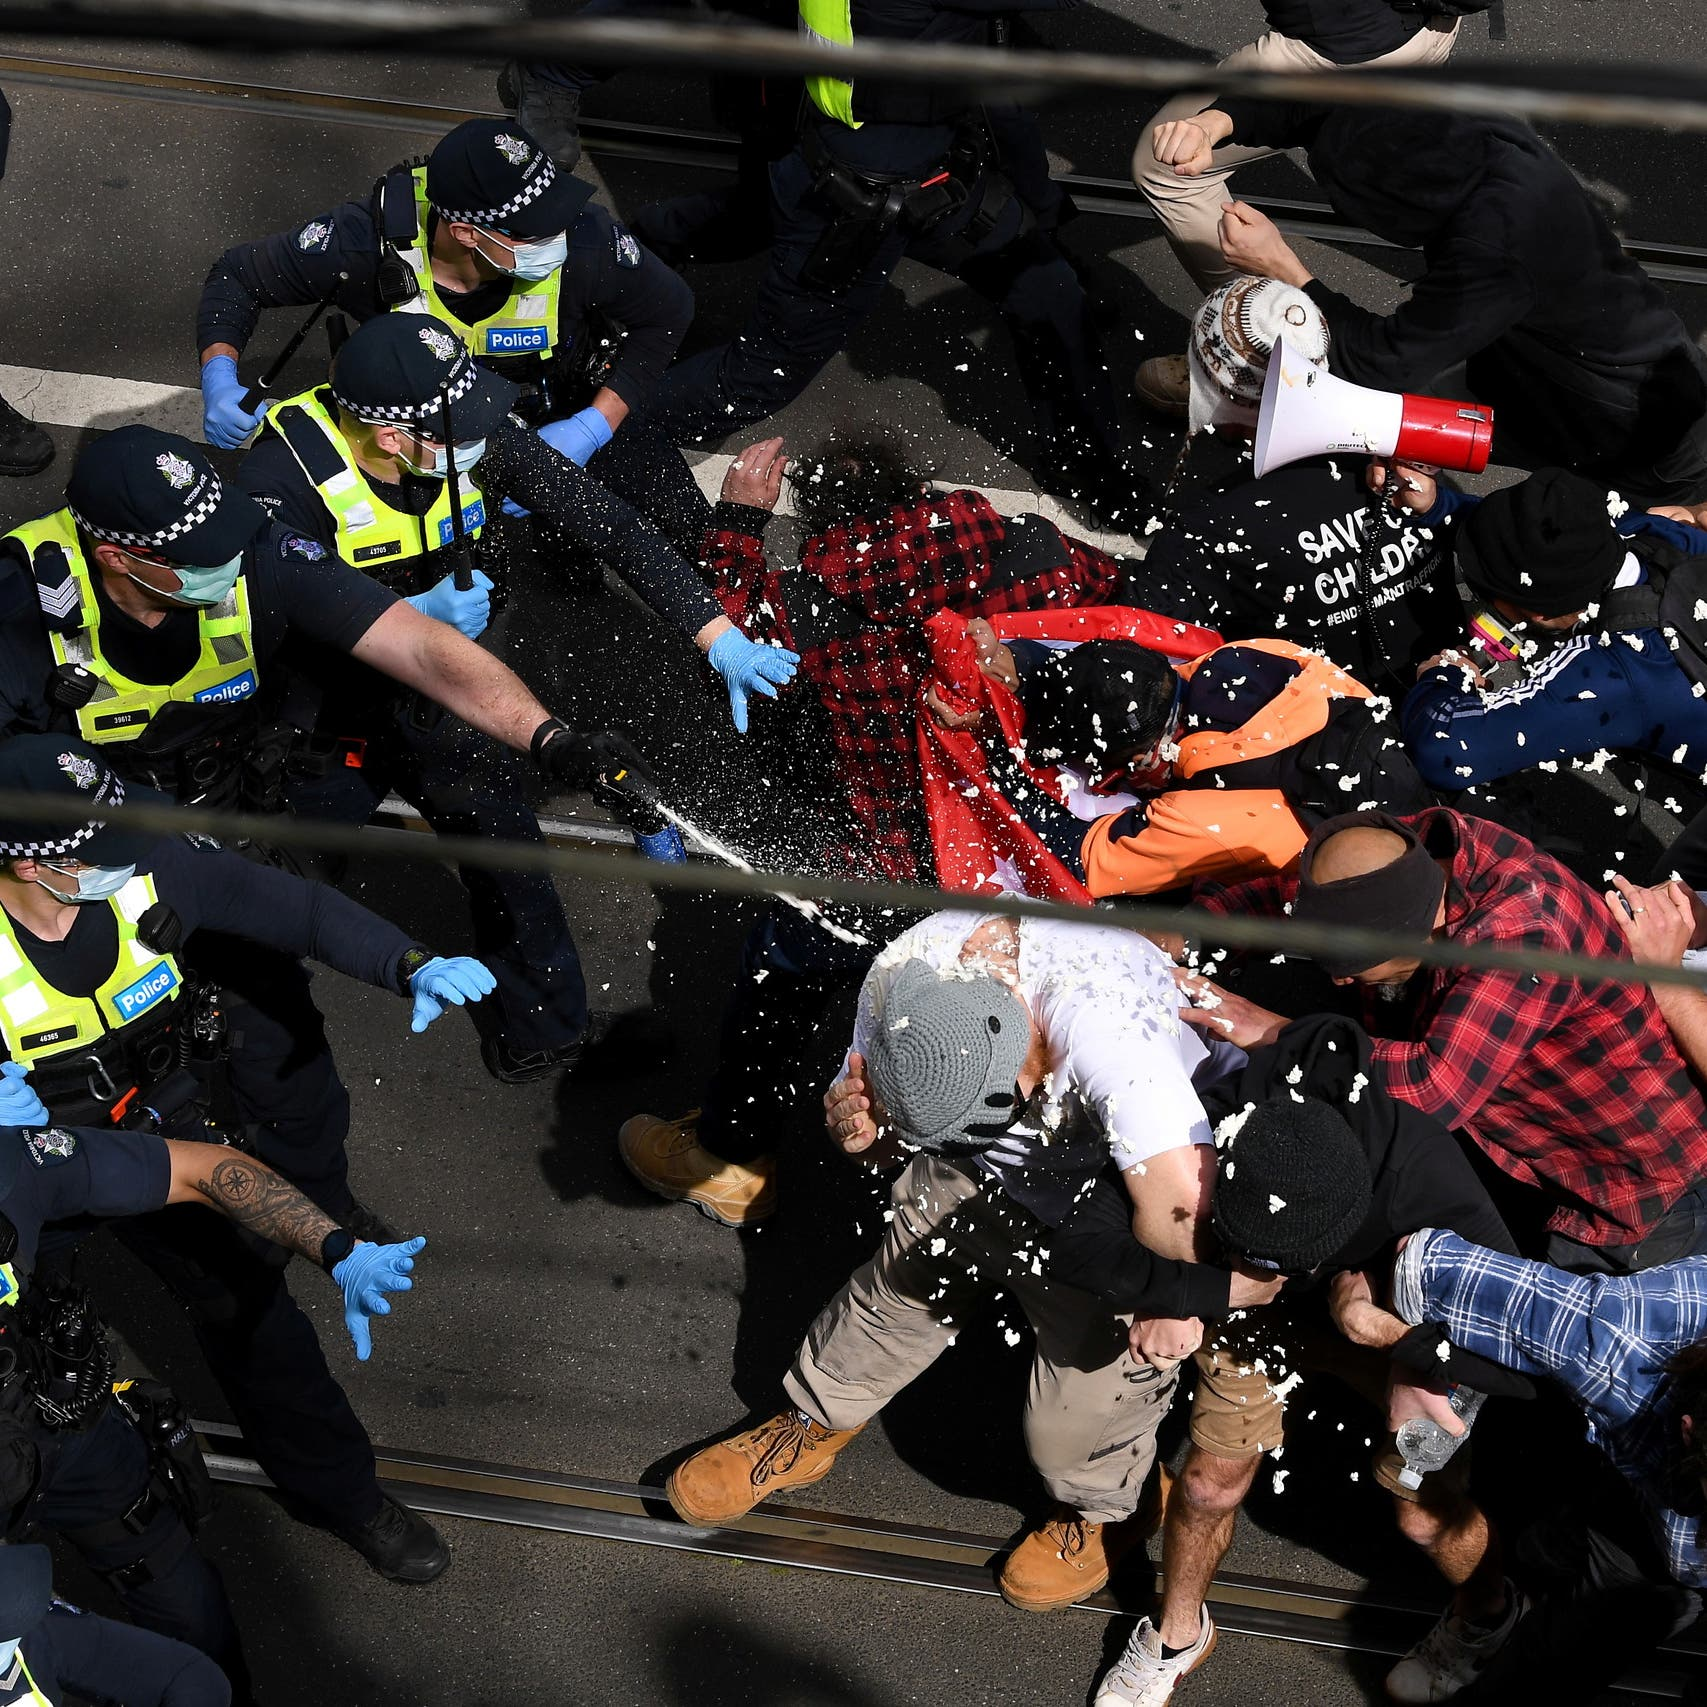 Australian police clashes with anti-lockdown protesters lead to arrest of nearly 270